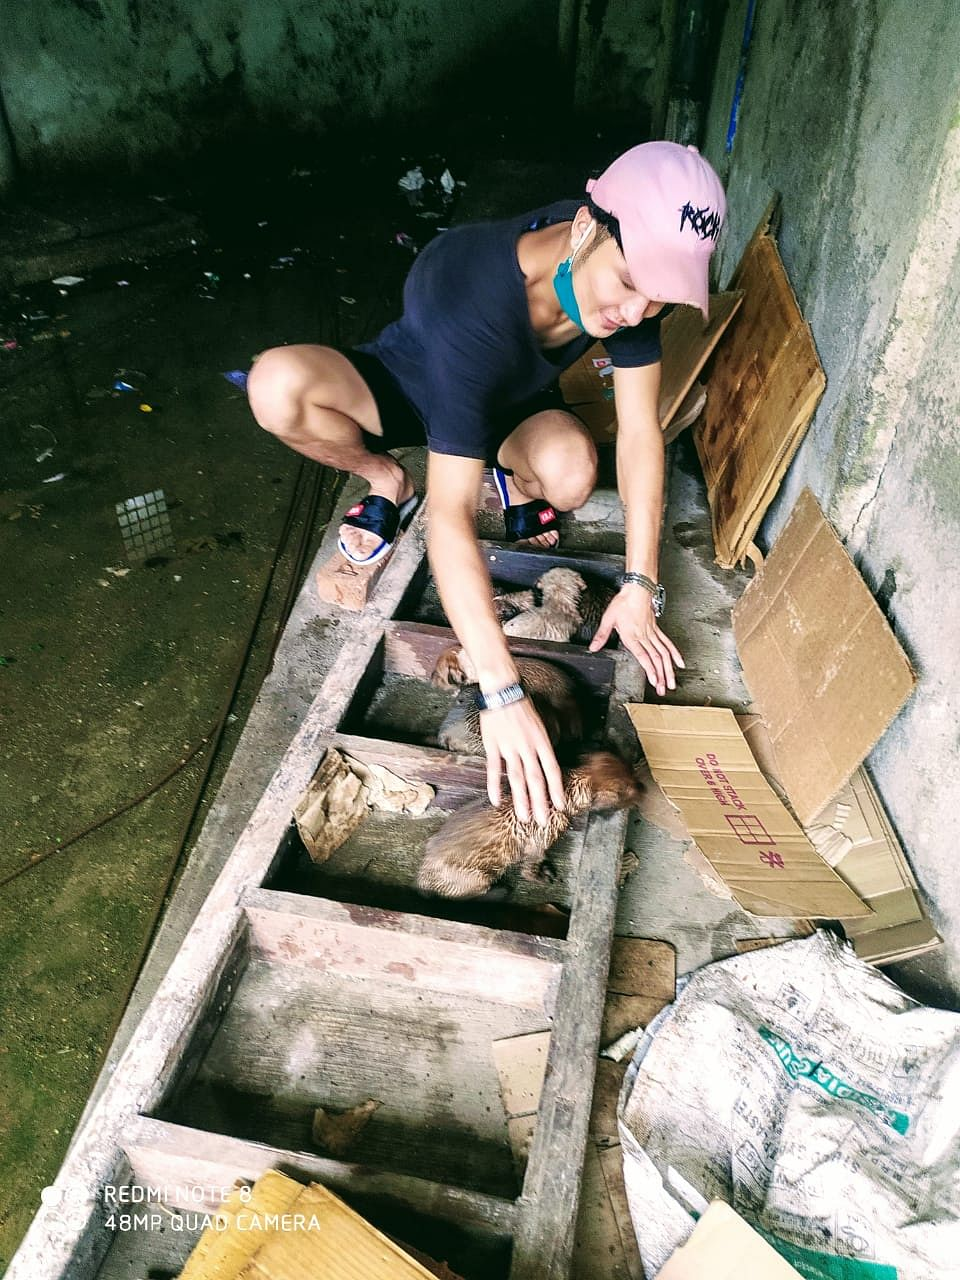 Humanity in times of crisis: Watchman saves 10 adorable puppies amid heavy rains in Thane